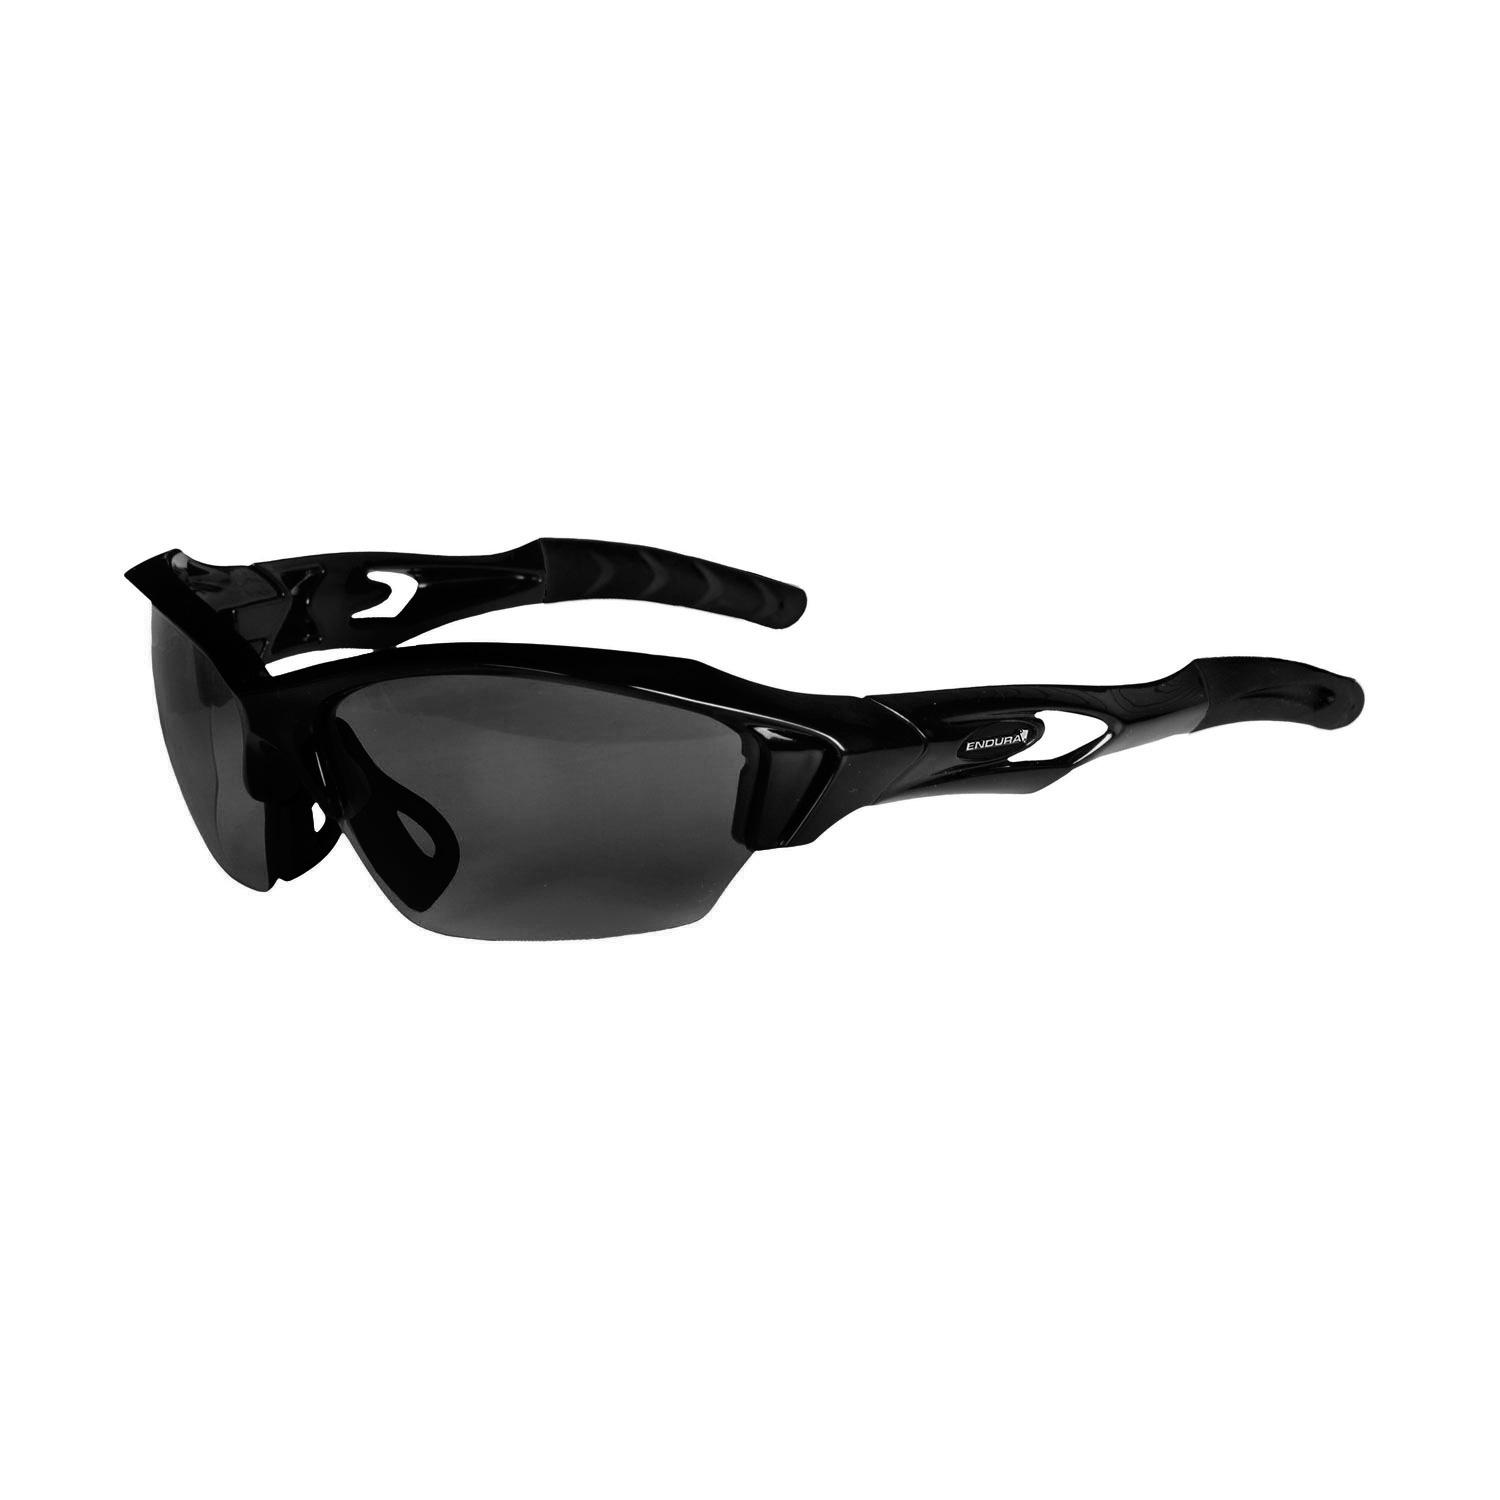 Endura Guppy Glasses 3 Sets Of Lenses clear Persimmon And Smoke